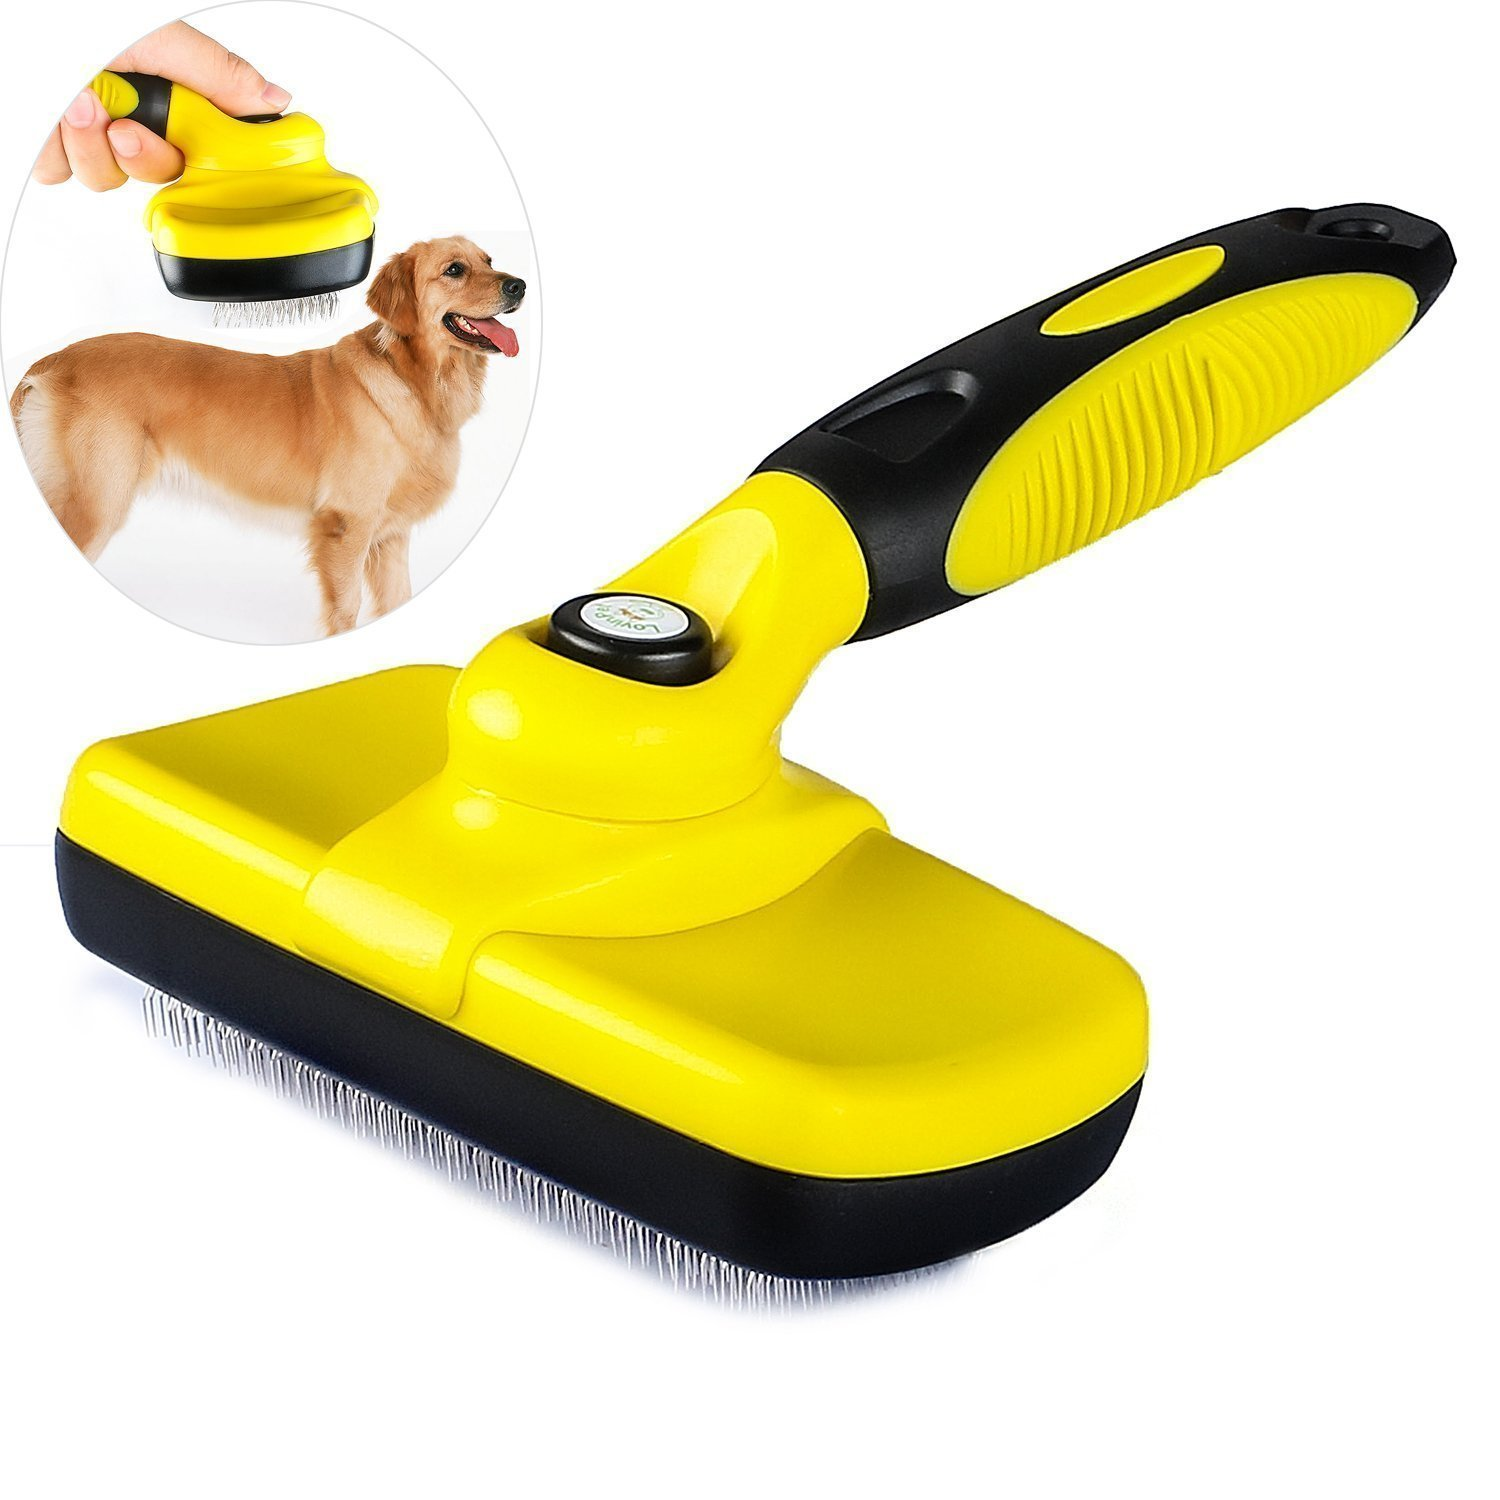 LovinPet Slicker Dog Brush Pet Cleaning Grooming Brush Supprime Tangled Knots, Mats, Undercoat & Loose Hair